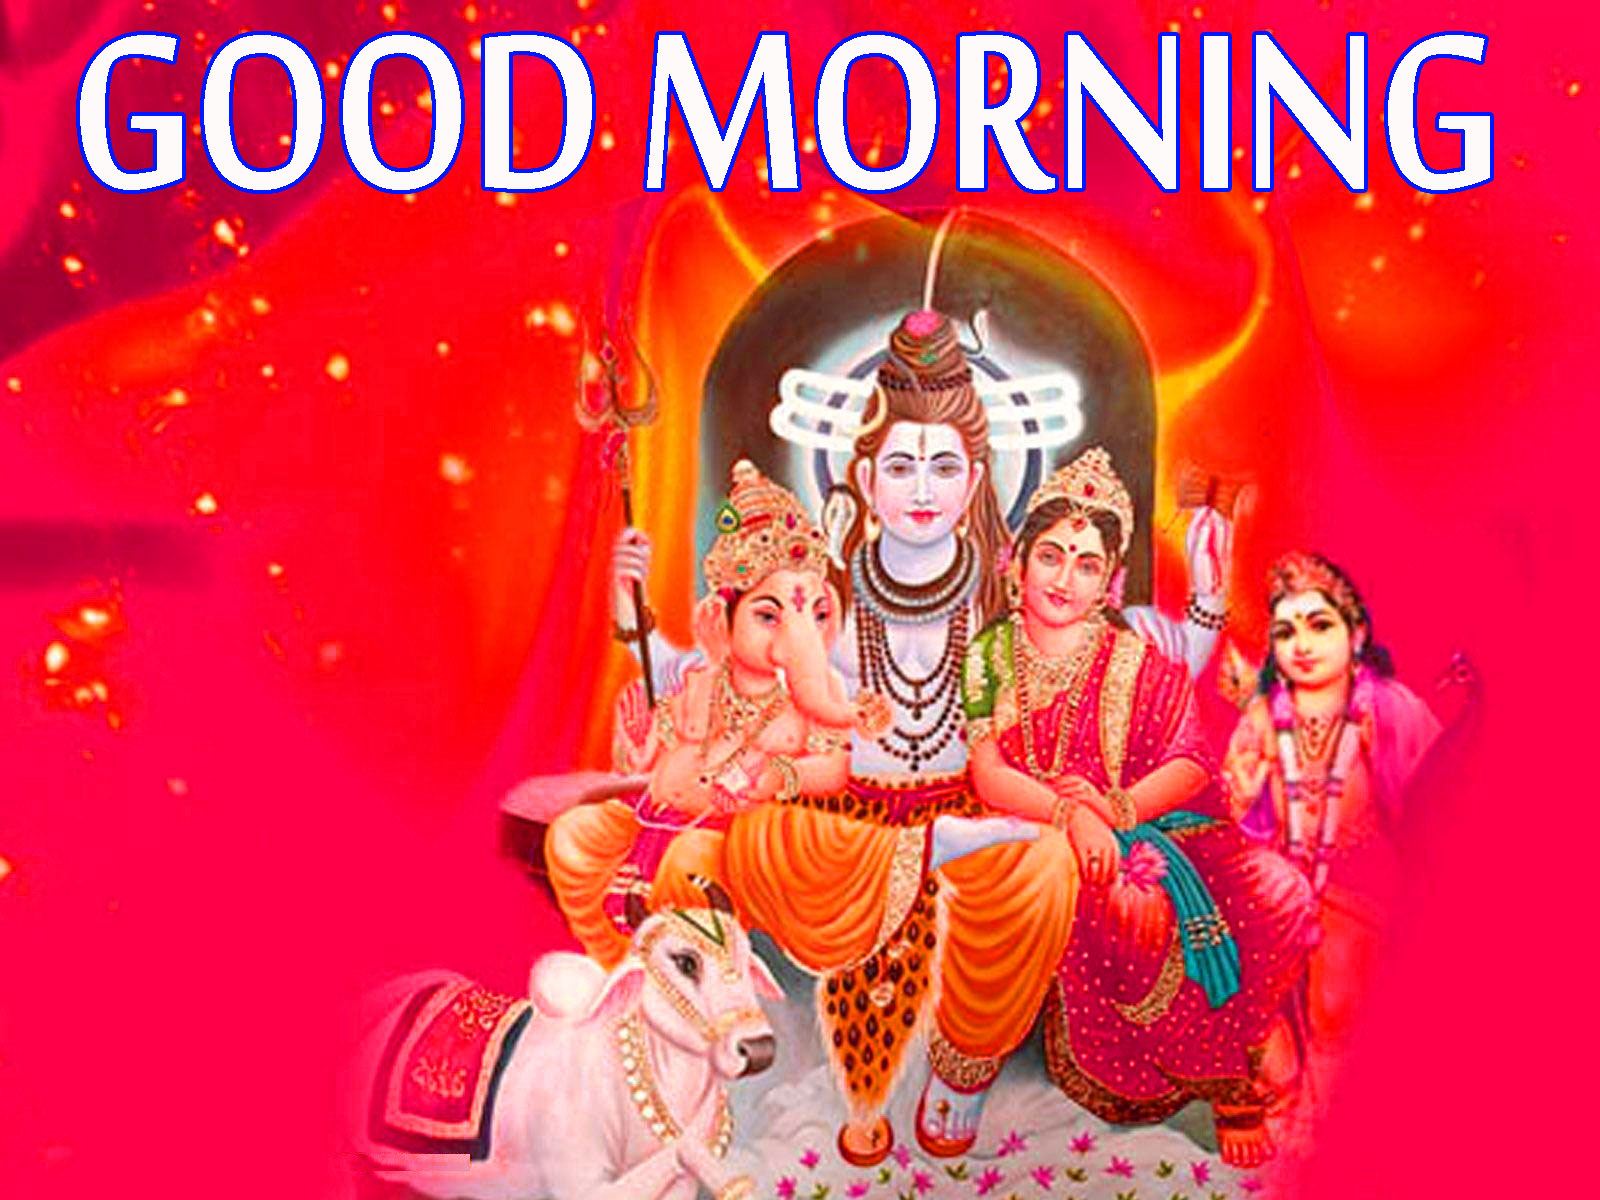 Hindu God Religious Good Morning Images Wallpaper Photo Download